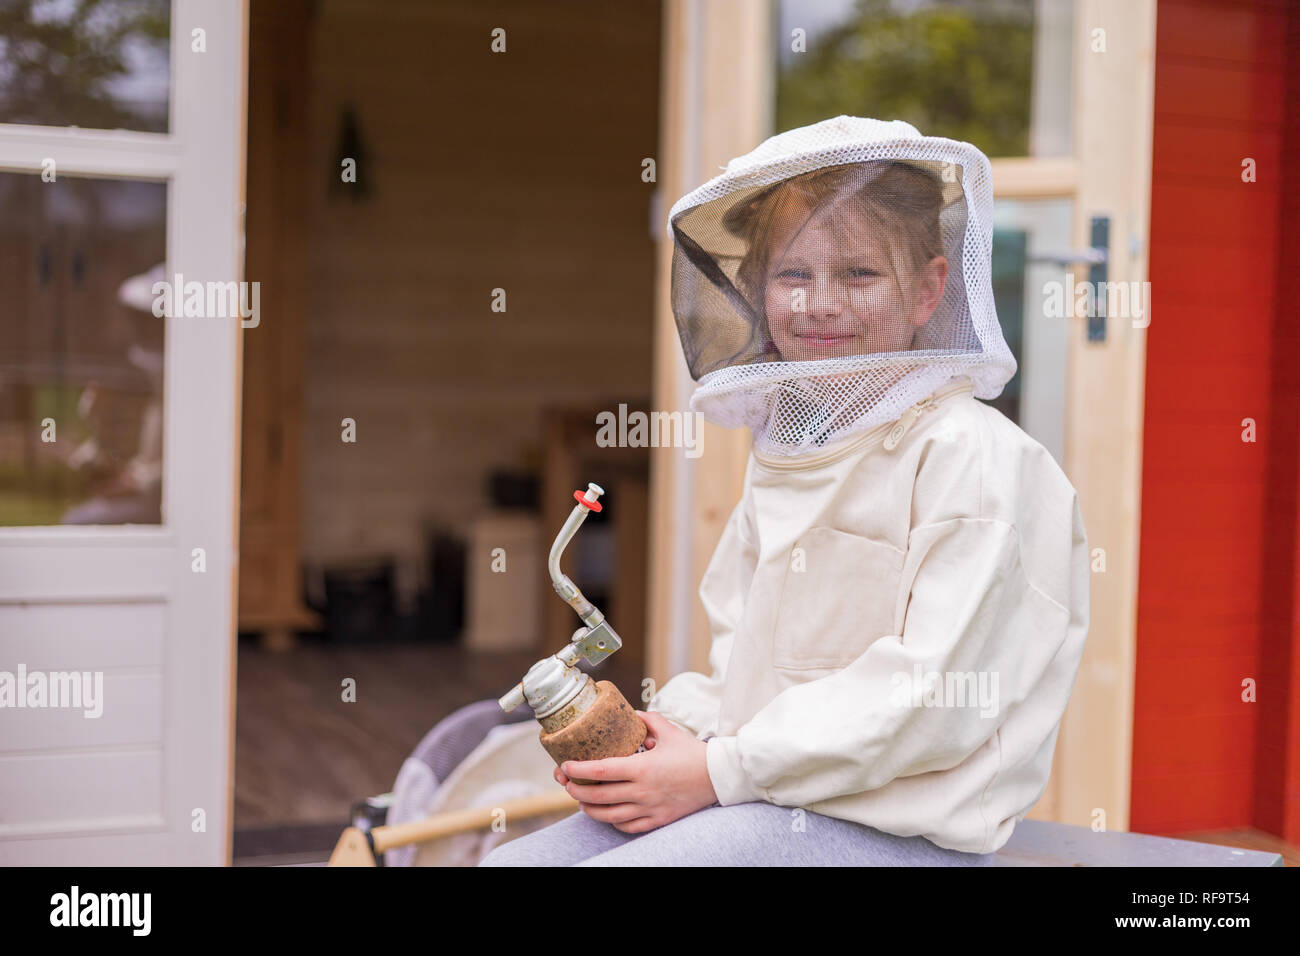 Portrait of a 7 year old girl with beekeeper suit for protection from the bees. In her hand she holds a beekeeper's pipe Stock Photo